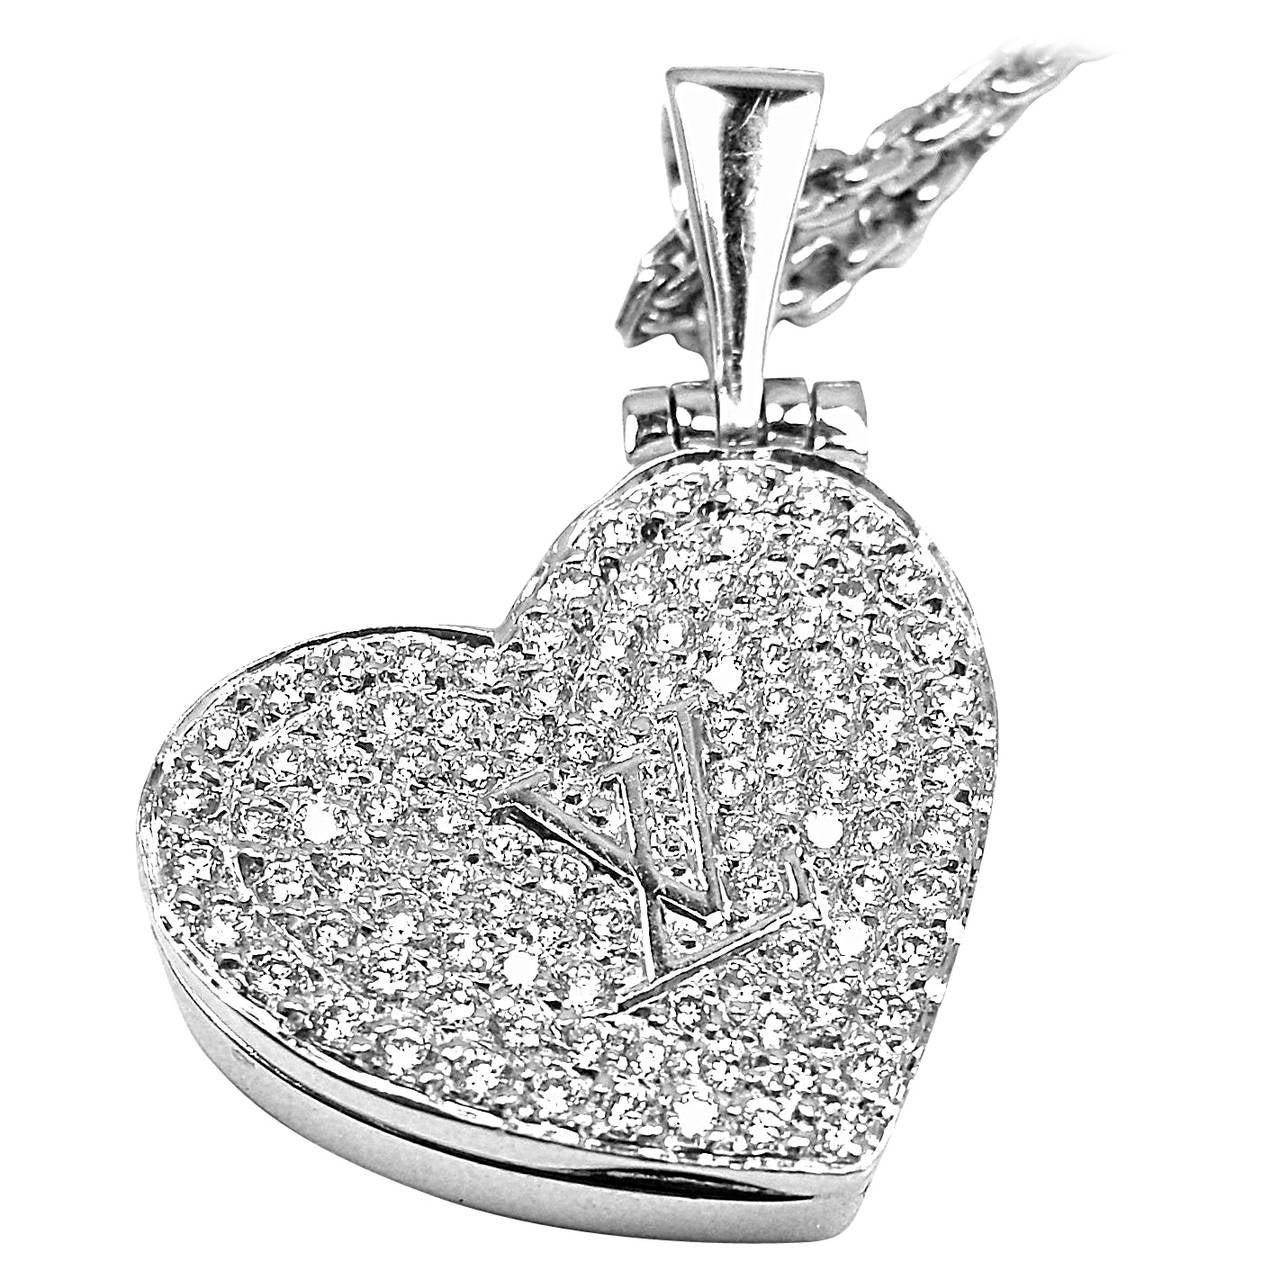 Louis vuitton diamond heart locket white gold pendant necklace at louis vuitton diamond heart locket white gold pendant necklace for sale aloadofball